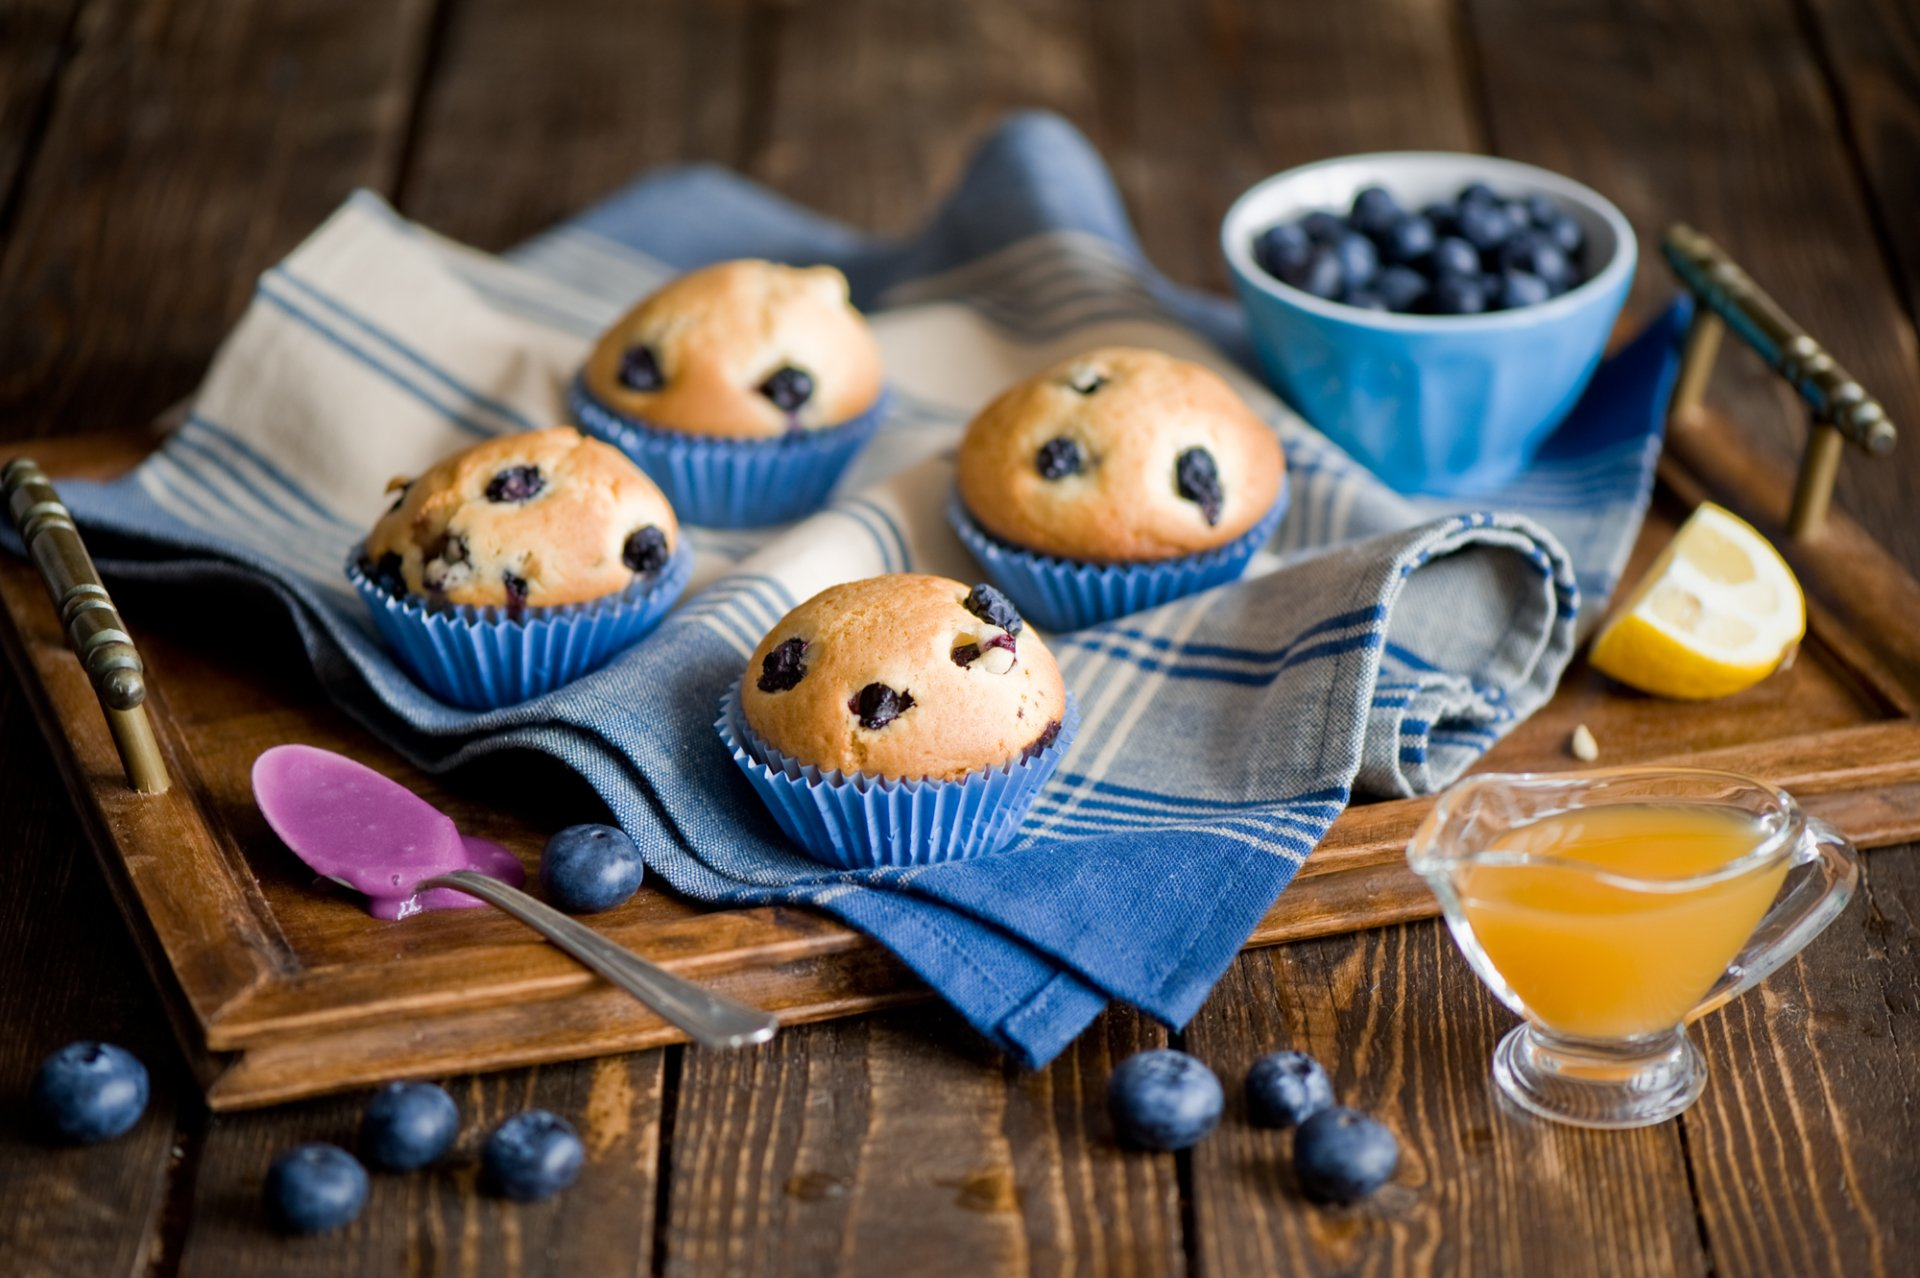 Food - Cupcake  Muffin Cake Tea Coffee Sweets Wallpaper